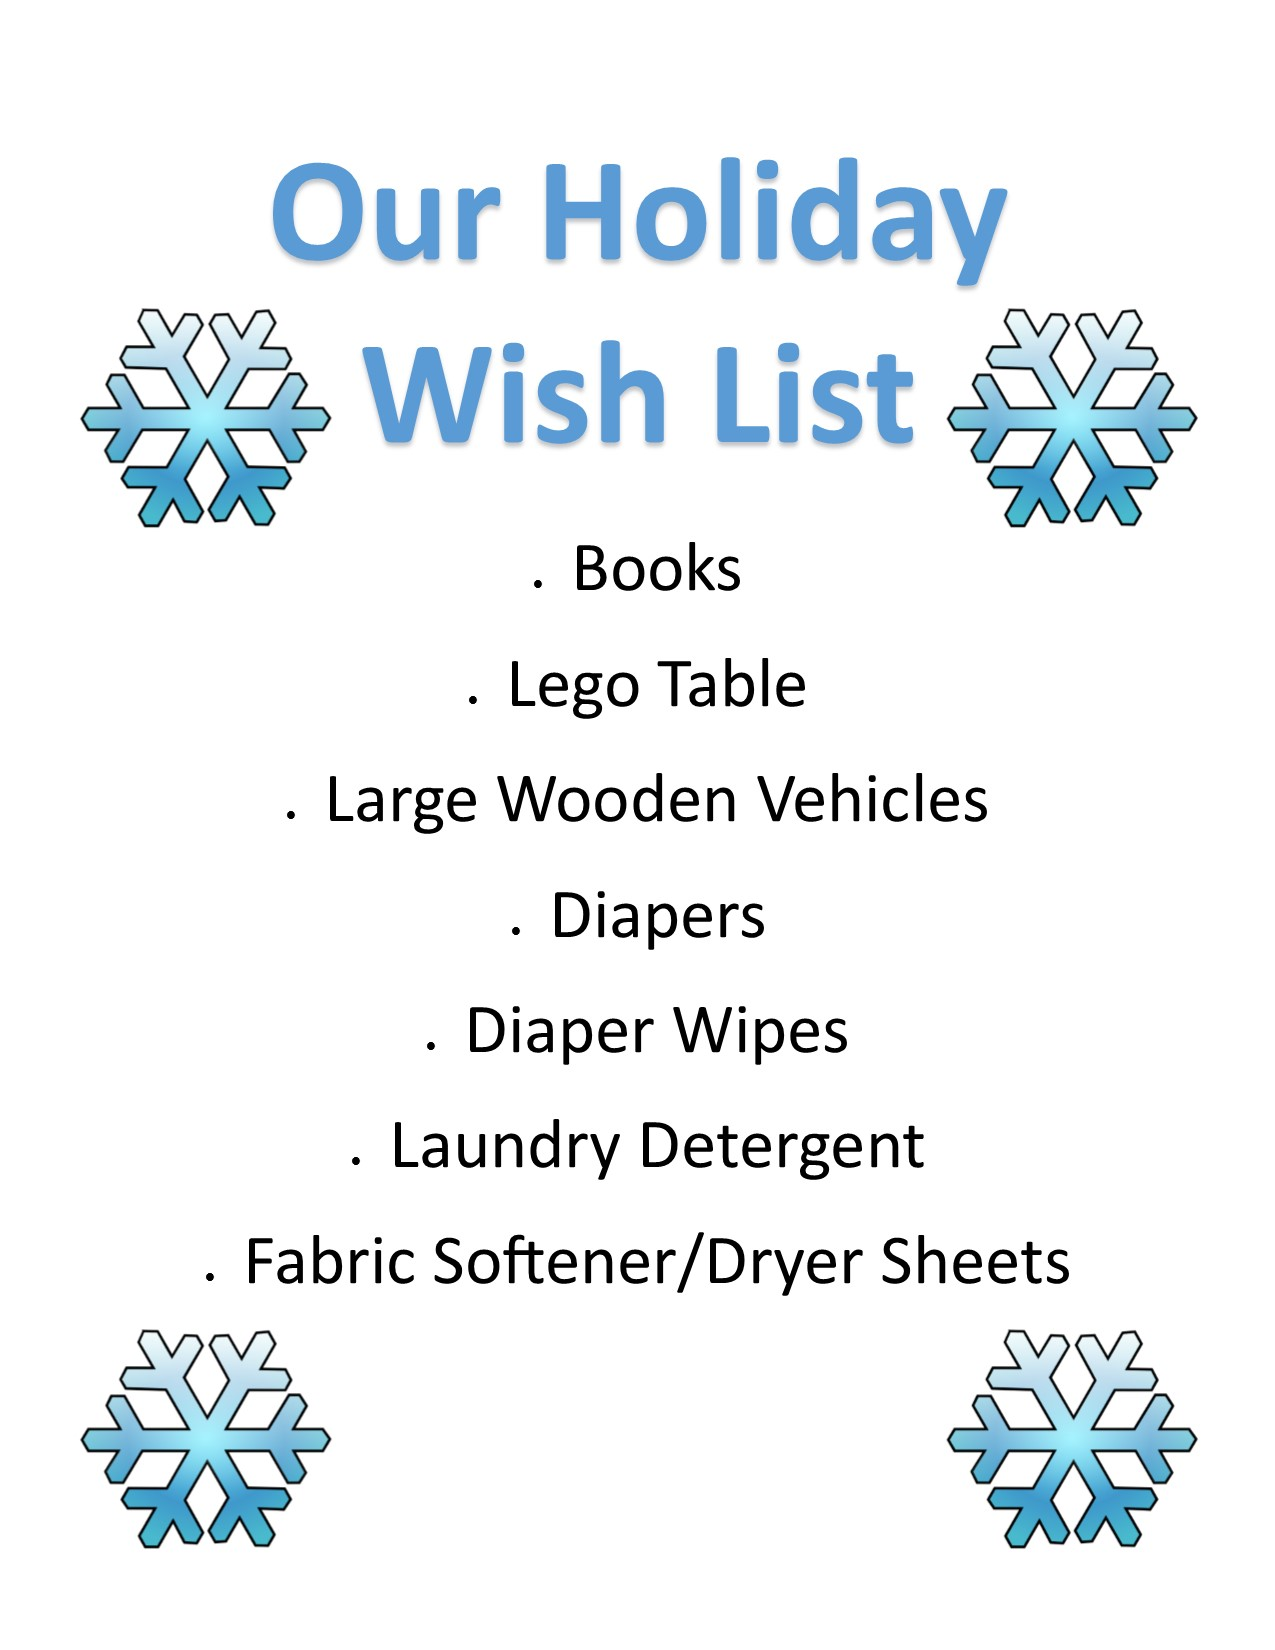 Our Holiday Wish List 2016